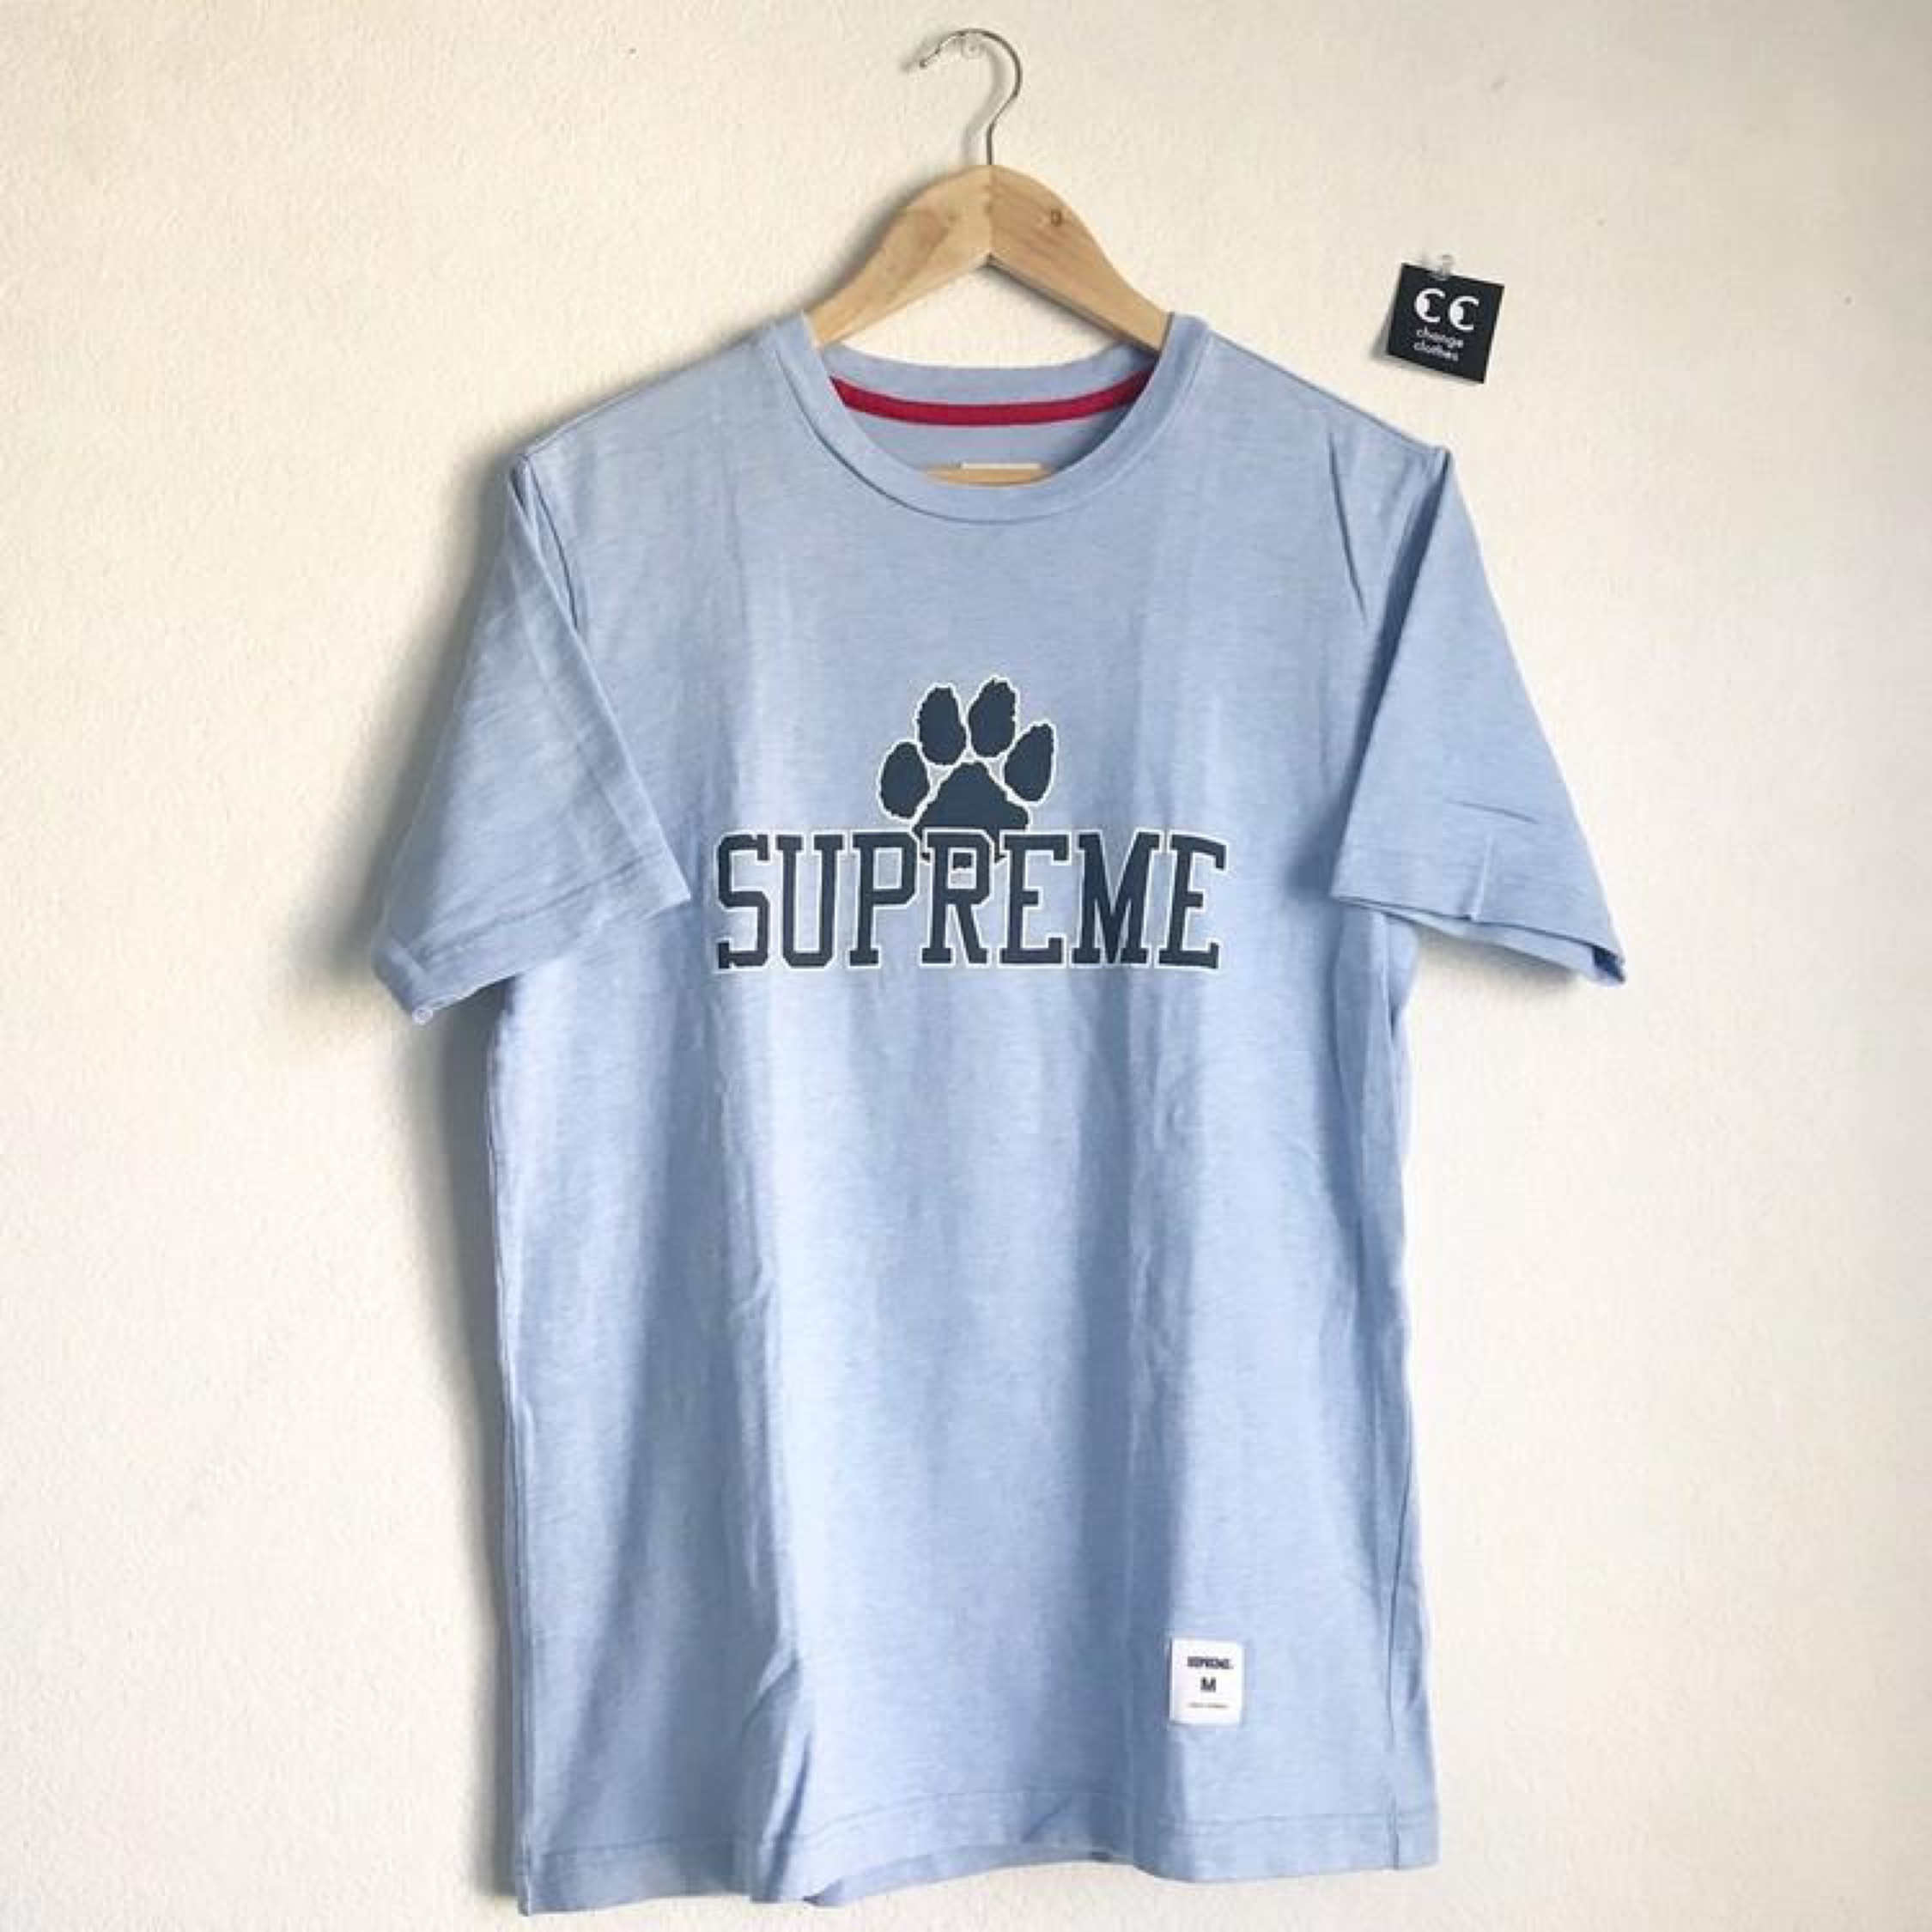 Supreme Athletic Top Paw Print Heather Blue